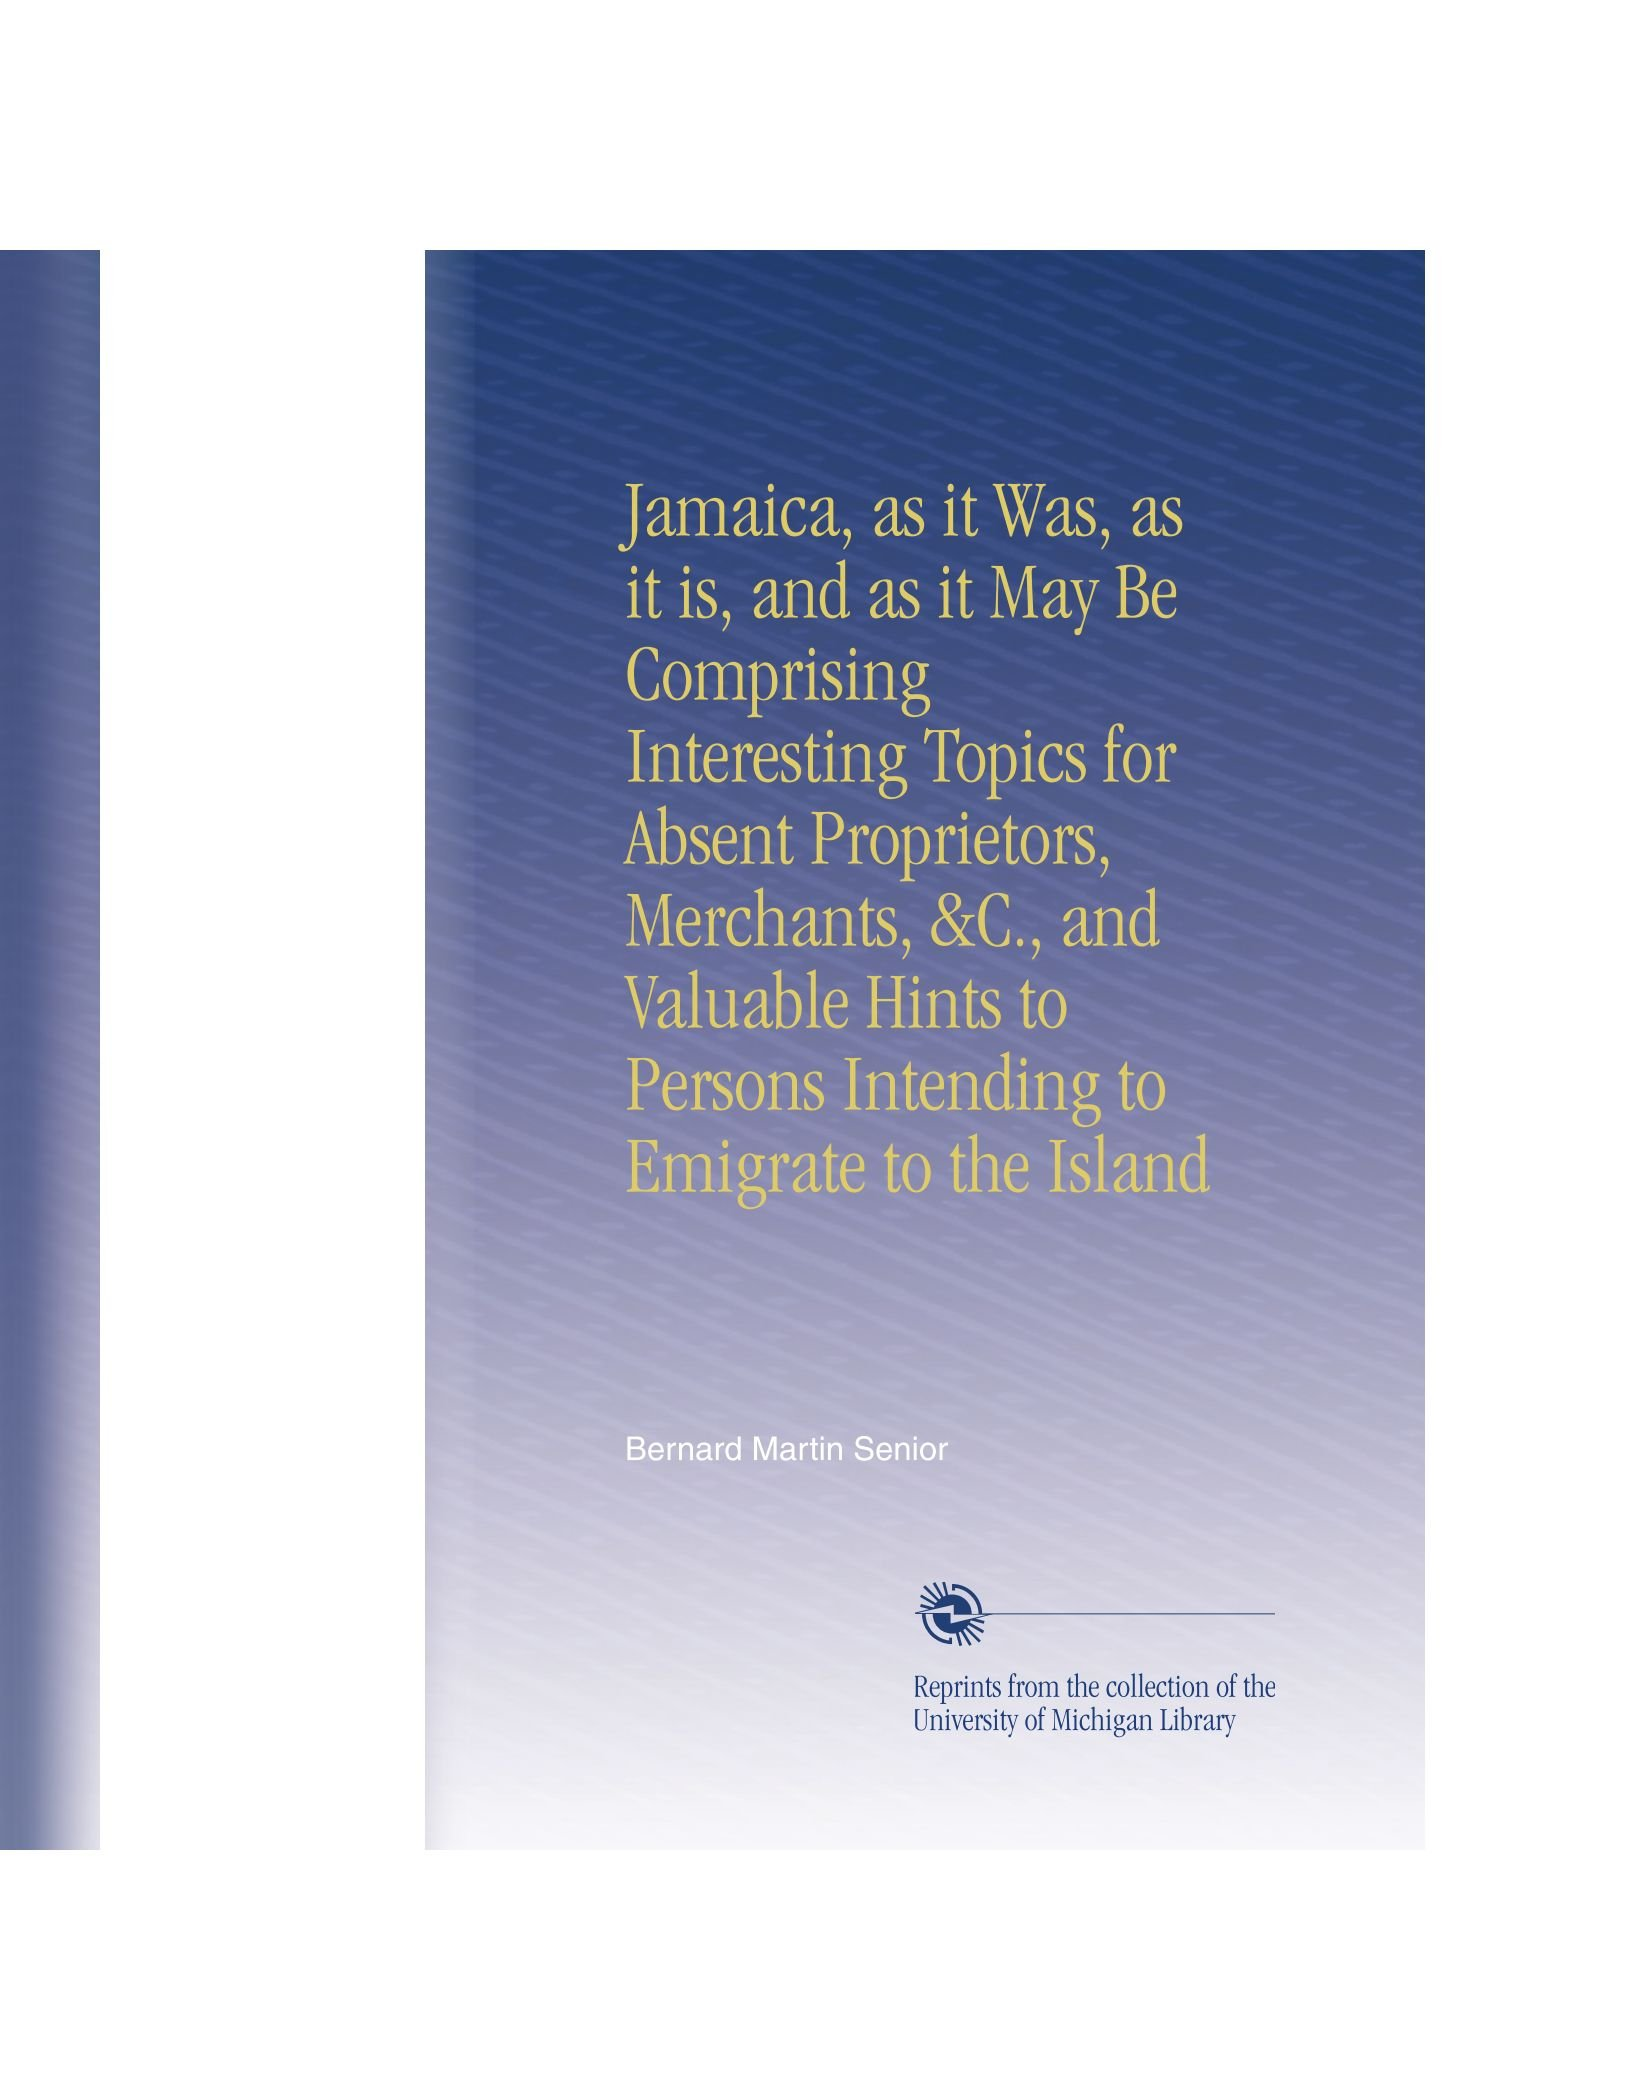 Download Jamaica, as it Was, as it is, and as it May Be Comprising Interesting Topics for Absent Proprietors, Merchants, &C., and Valuable Hints to Persons Intending to Emigrate to the Island PDF